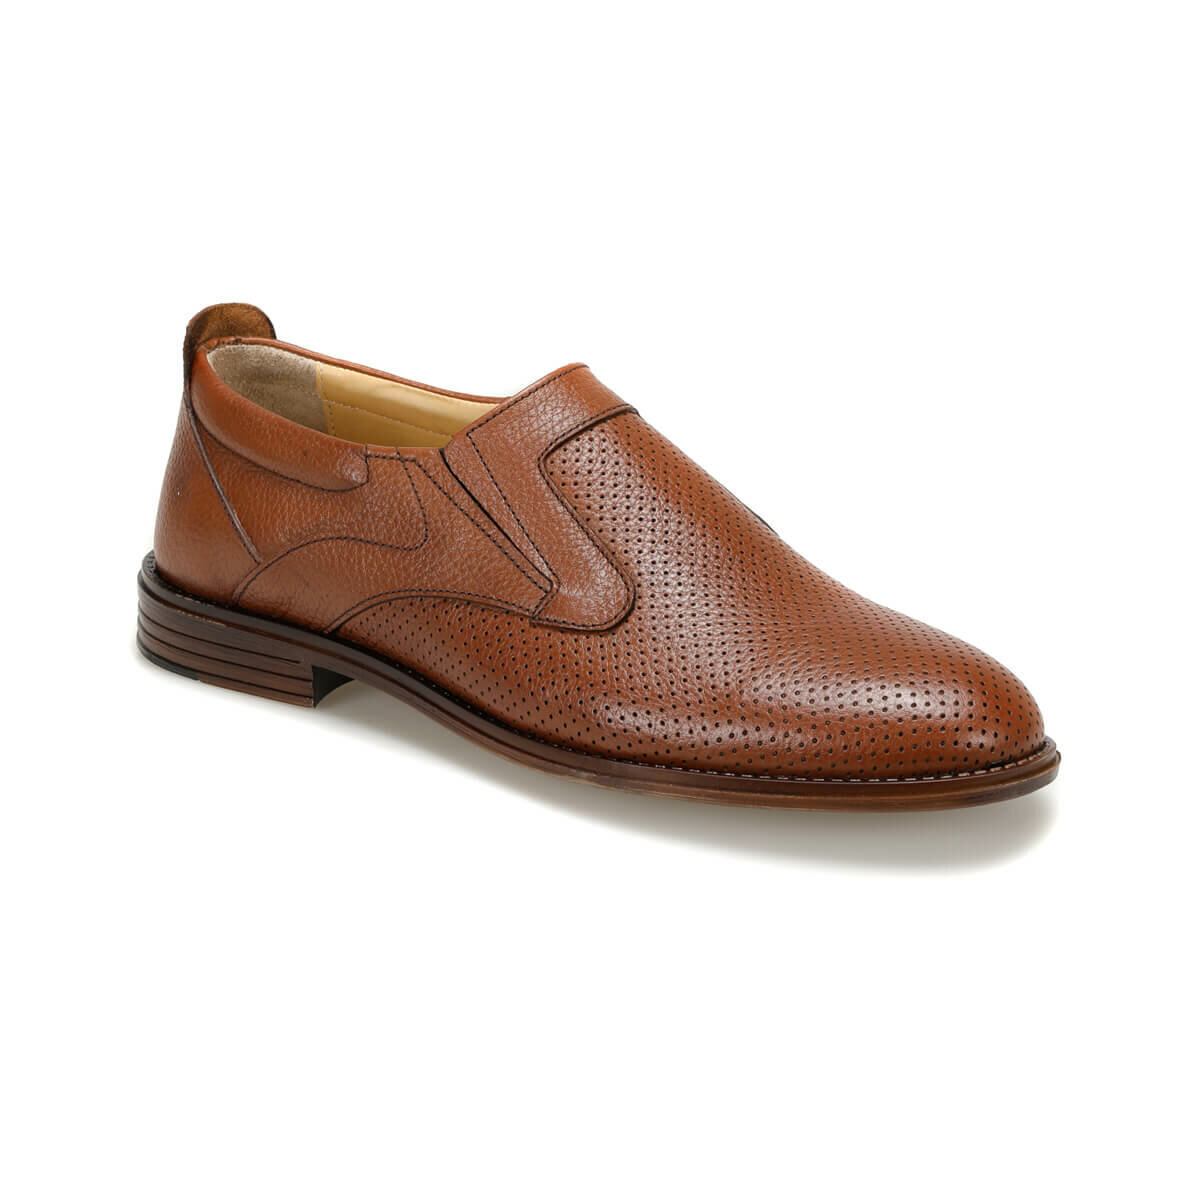 FLO 2400-1 Tan Men 'S Classic Shoes Garamond